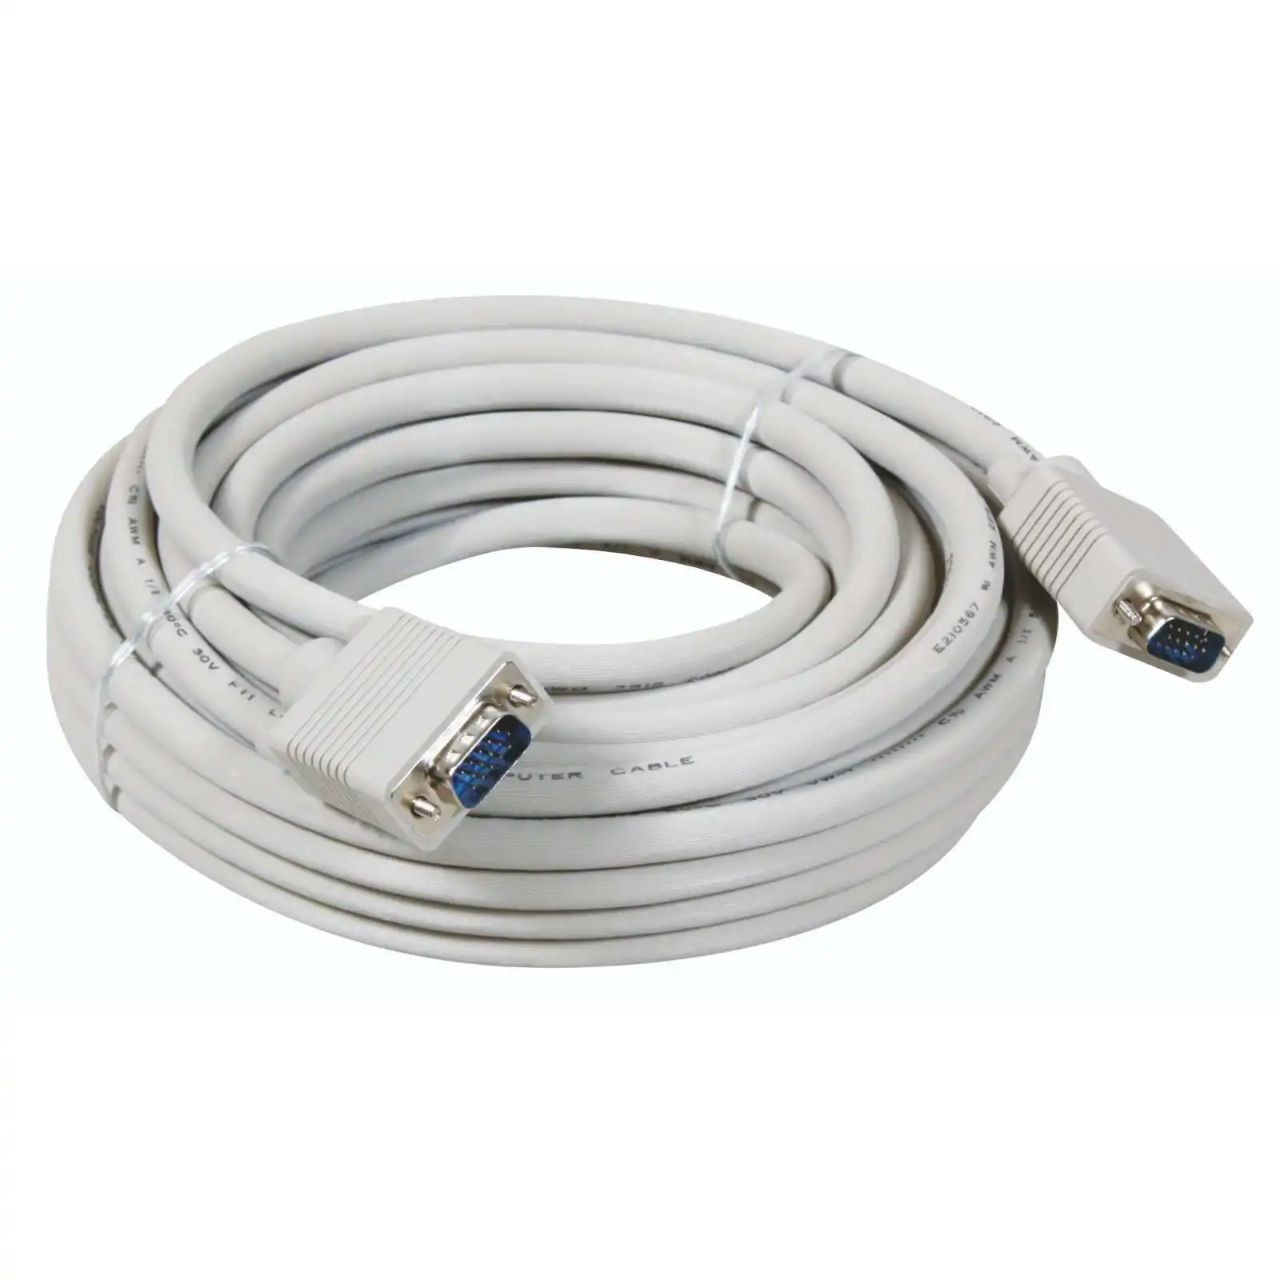 Kabel Vga 3m 3 Meter M Digital Cable Male To Od 8mm 20m